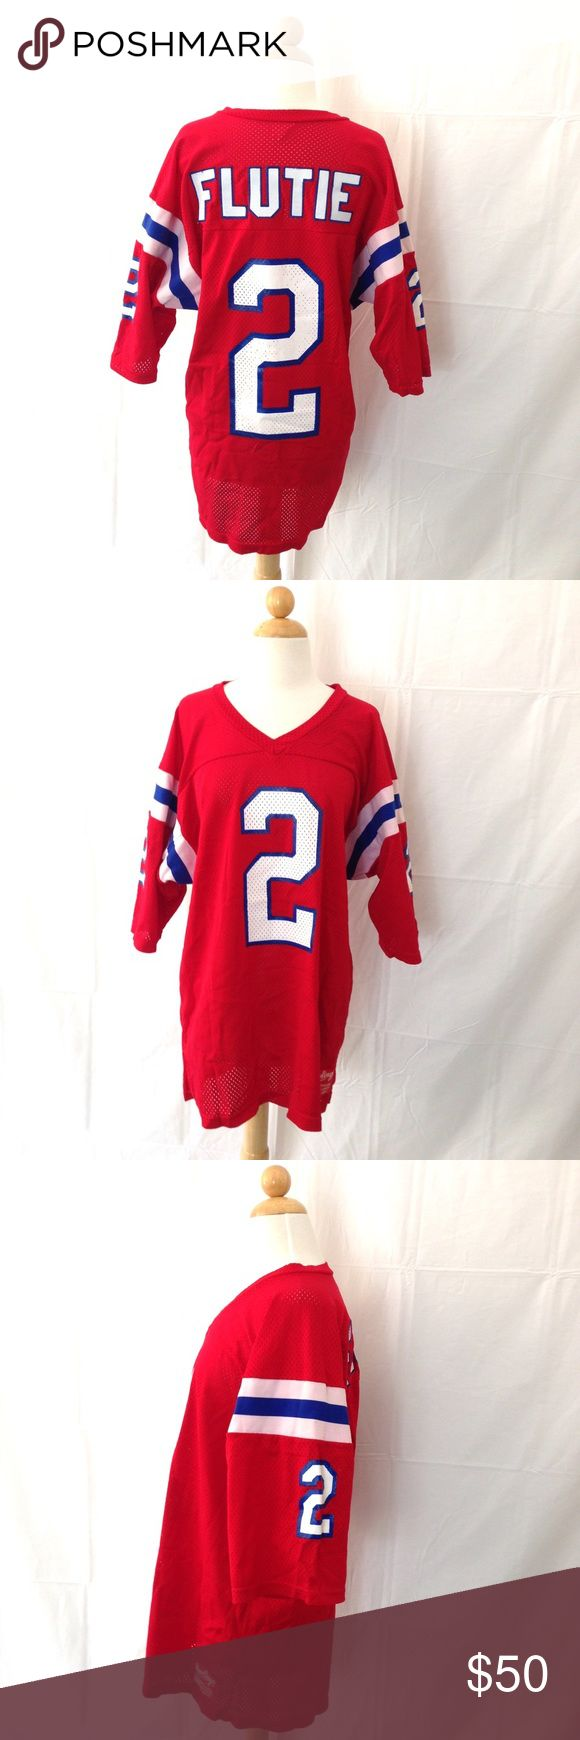 Doug Flutie Rawlings Red Buffalo Bills Jersey Flutie is in the College and Canadian Football Hall of Fame and was a Heisman Trophy winner. This jersey is in pretty good shape, has one spot with what looks like a little misplaced paint. It is a size Large. Measurements shown are first pit to pit, second neck to bottom. Rawlings Shirts Tees - Short Sleeve